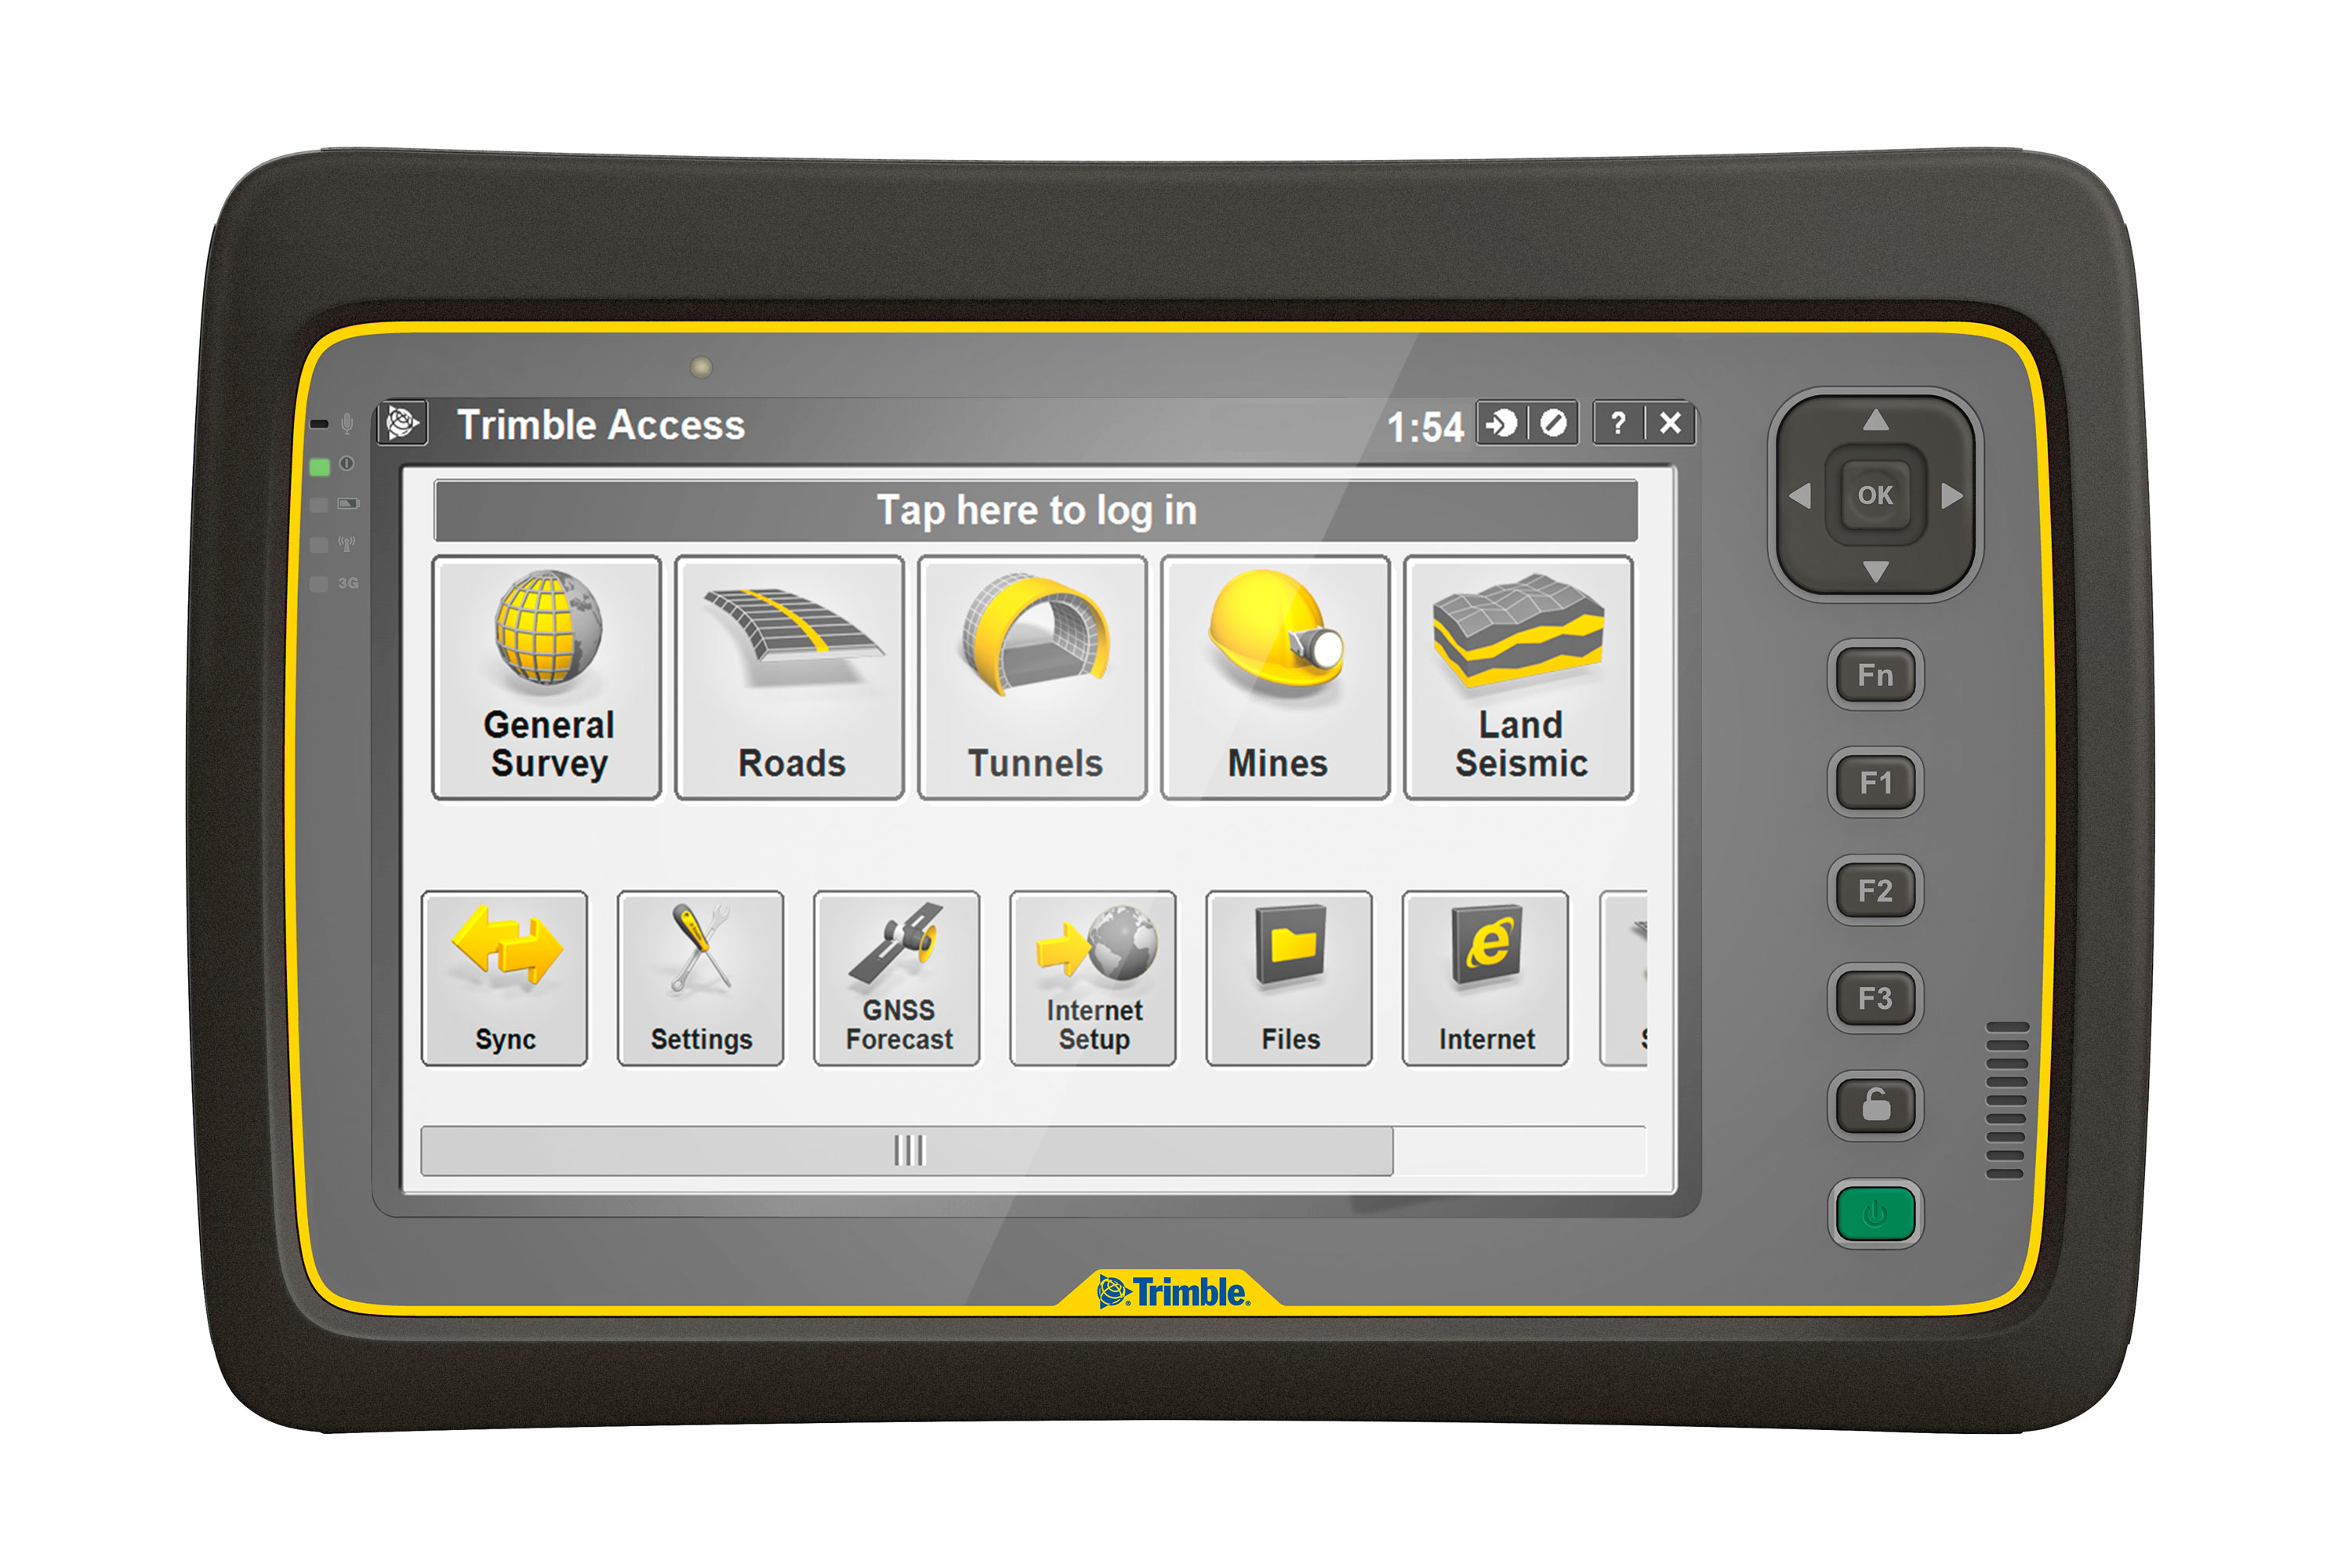 Trimble Tablet PC